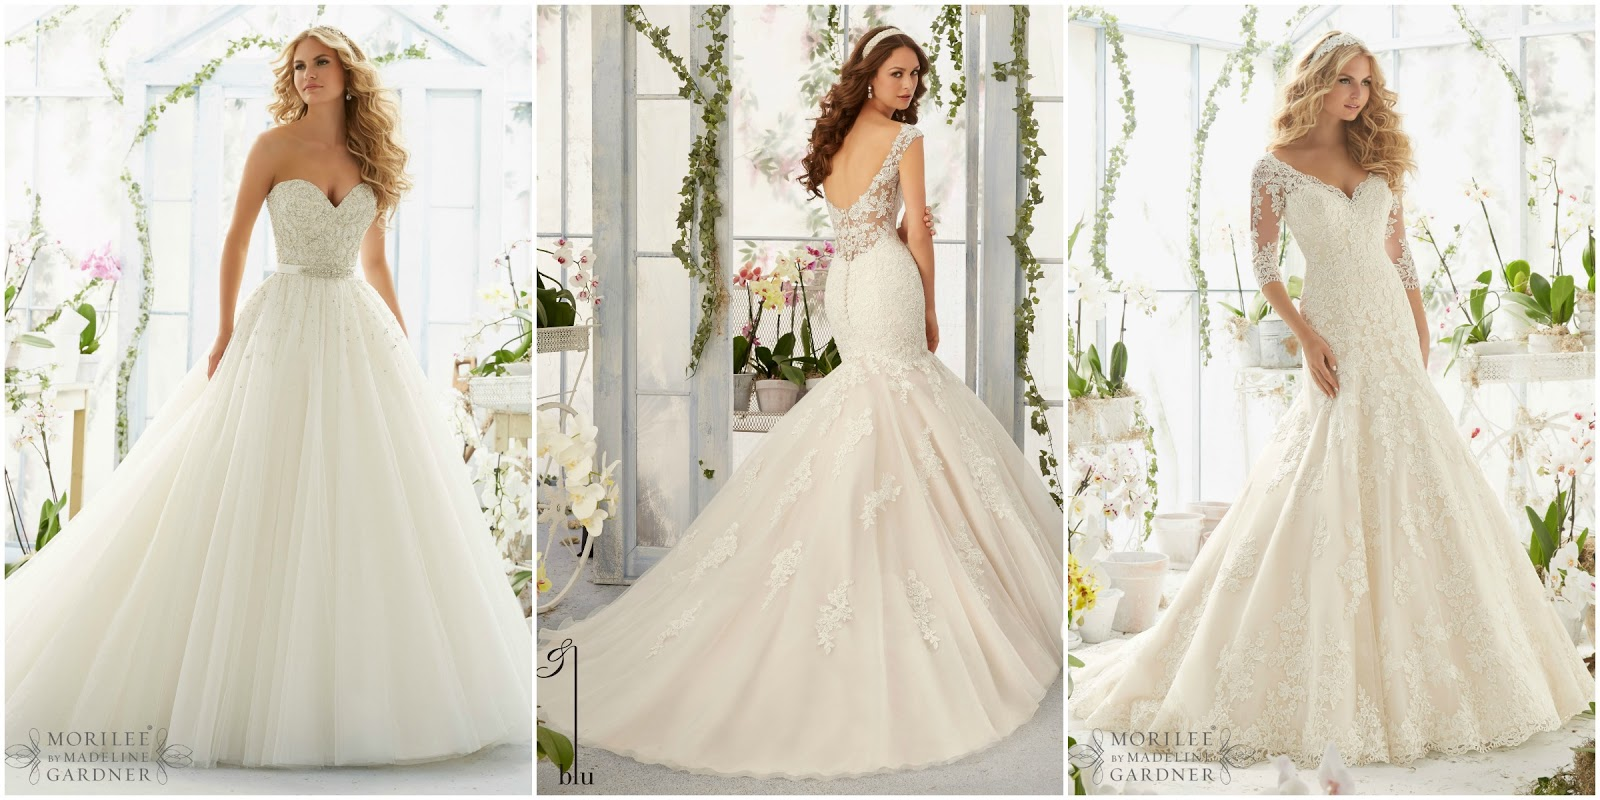 Wedding dresses in florida usa dress fric ideas for Usa wedding dresses online